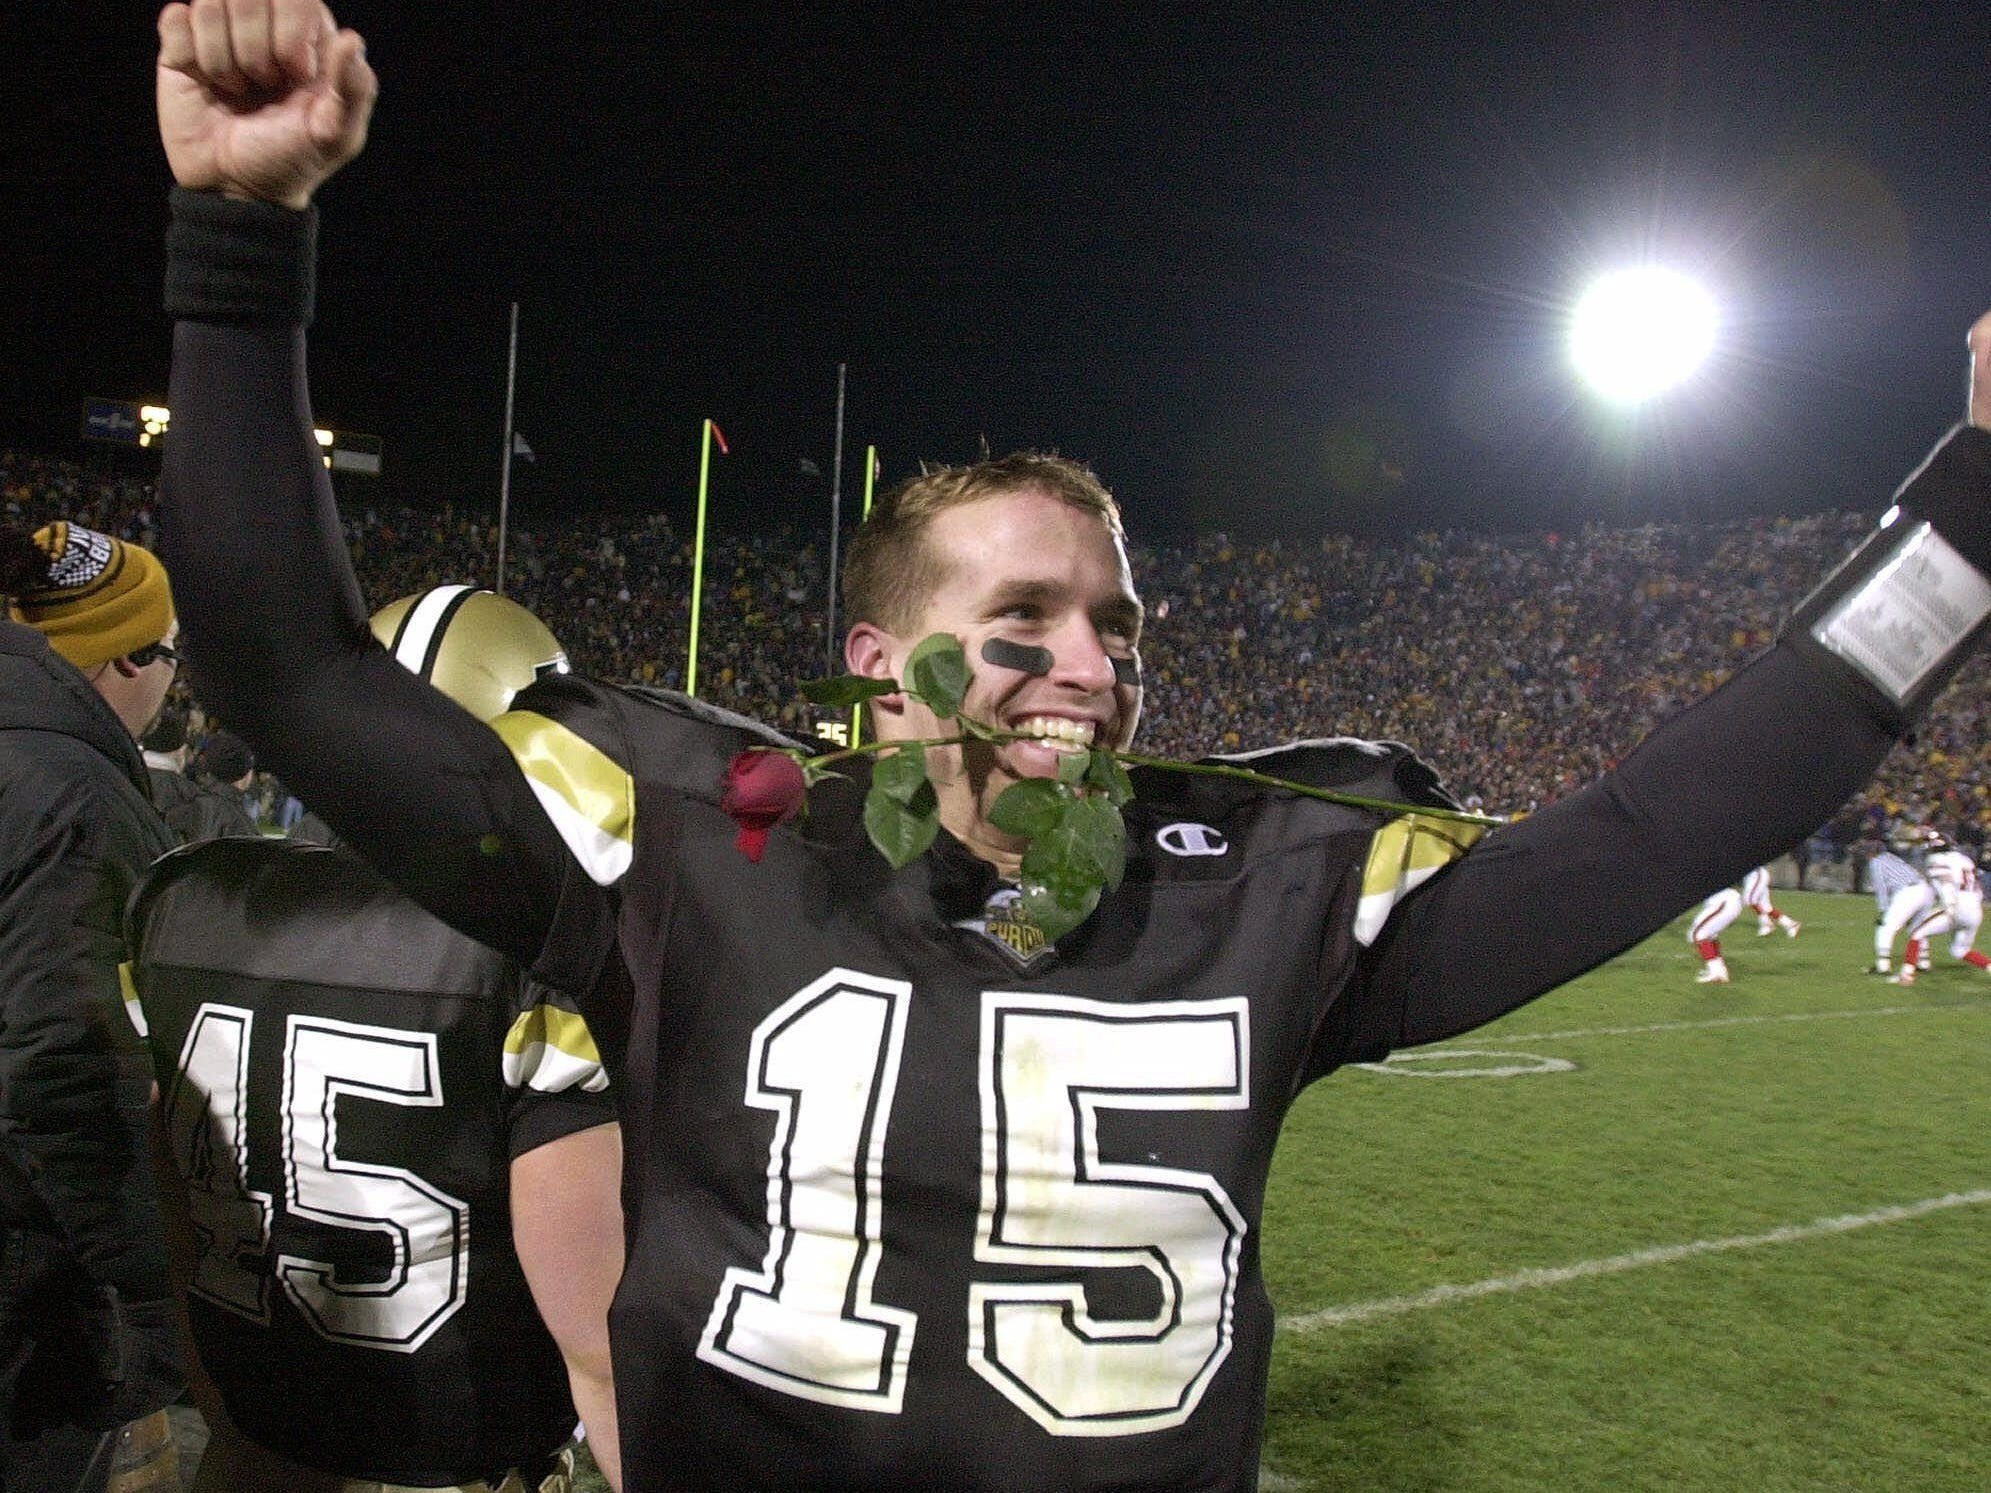 Doyel: Drew Brees, once deemed too short for NFL, about to break passing record